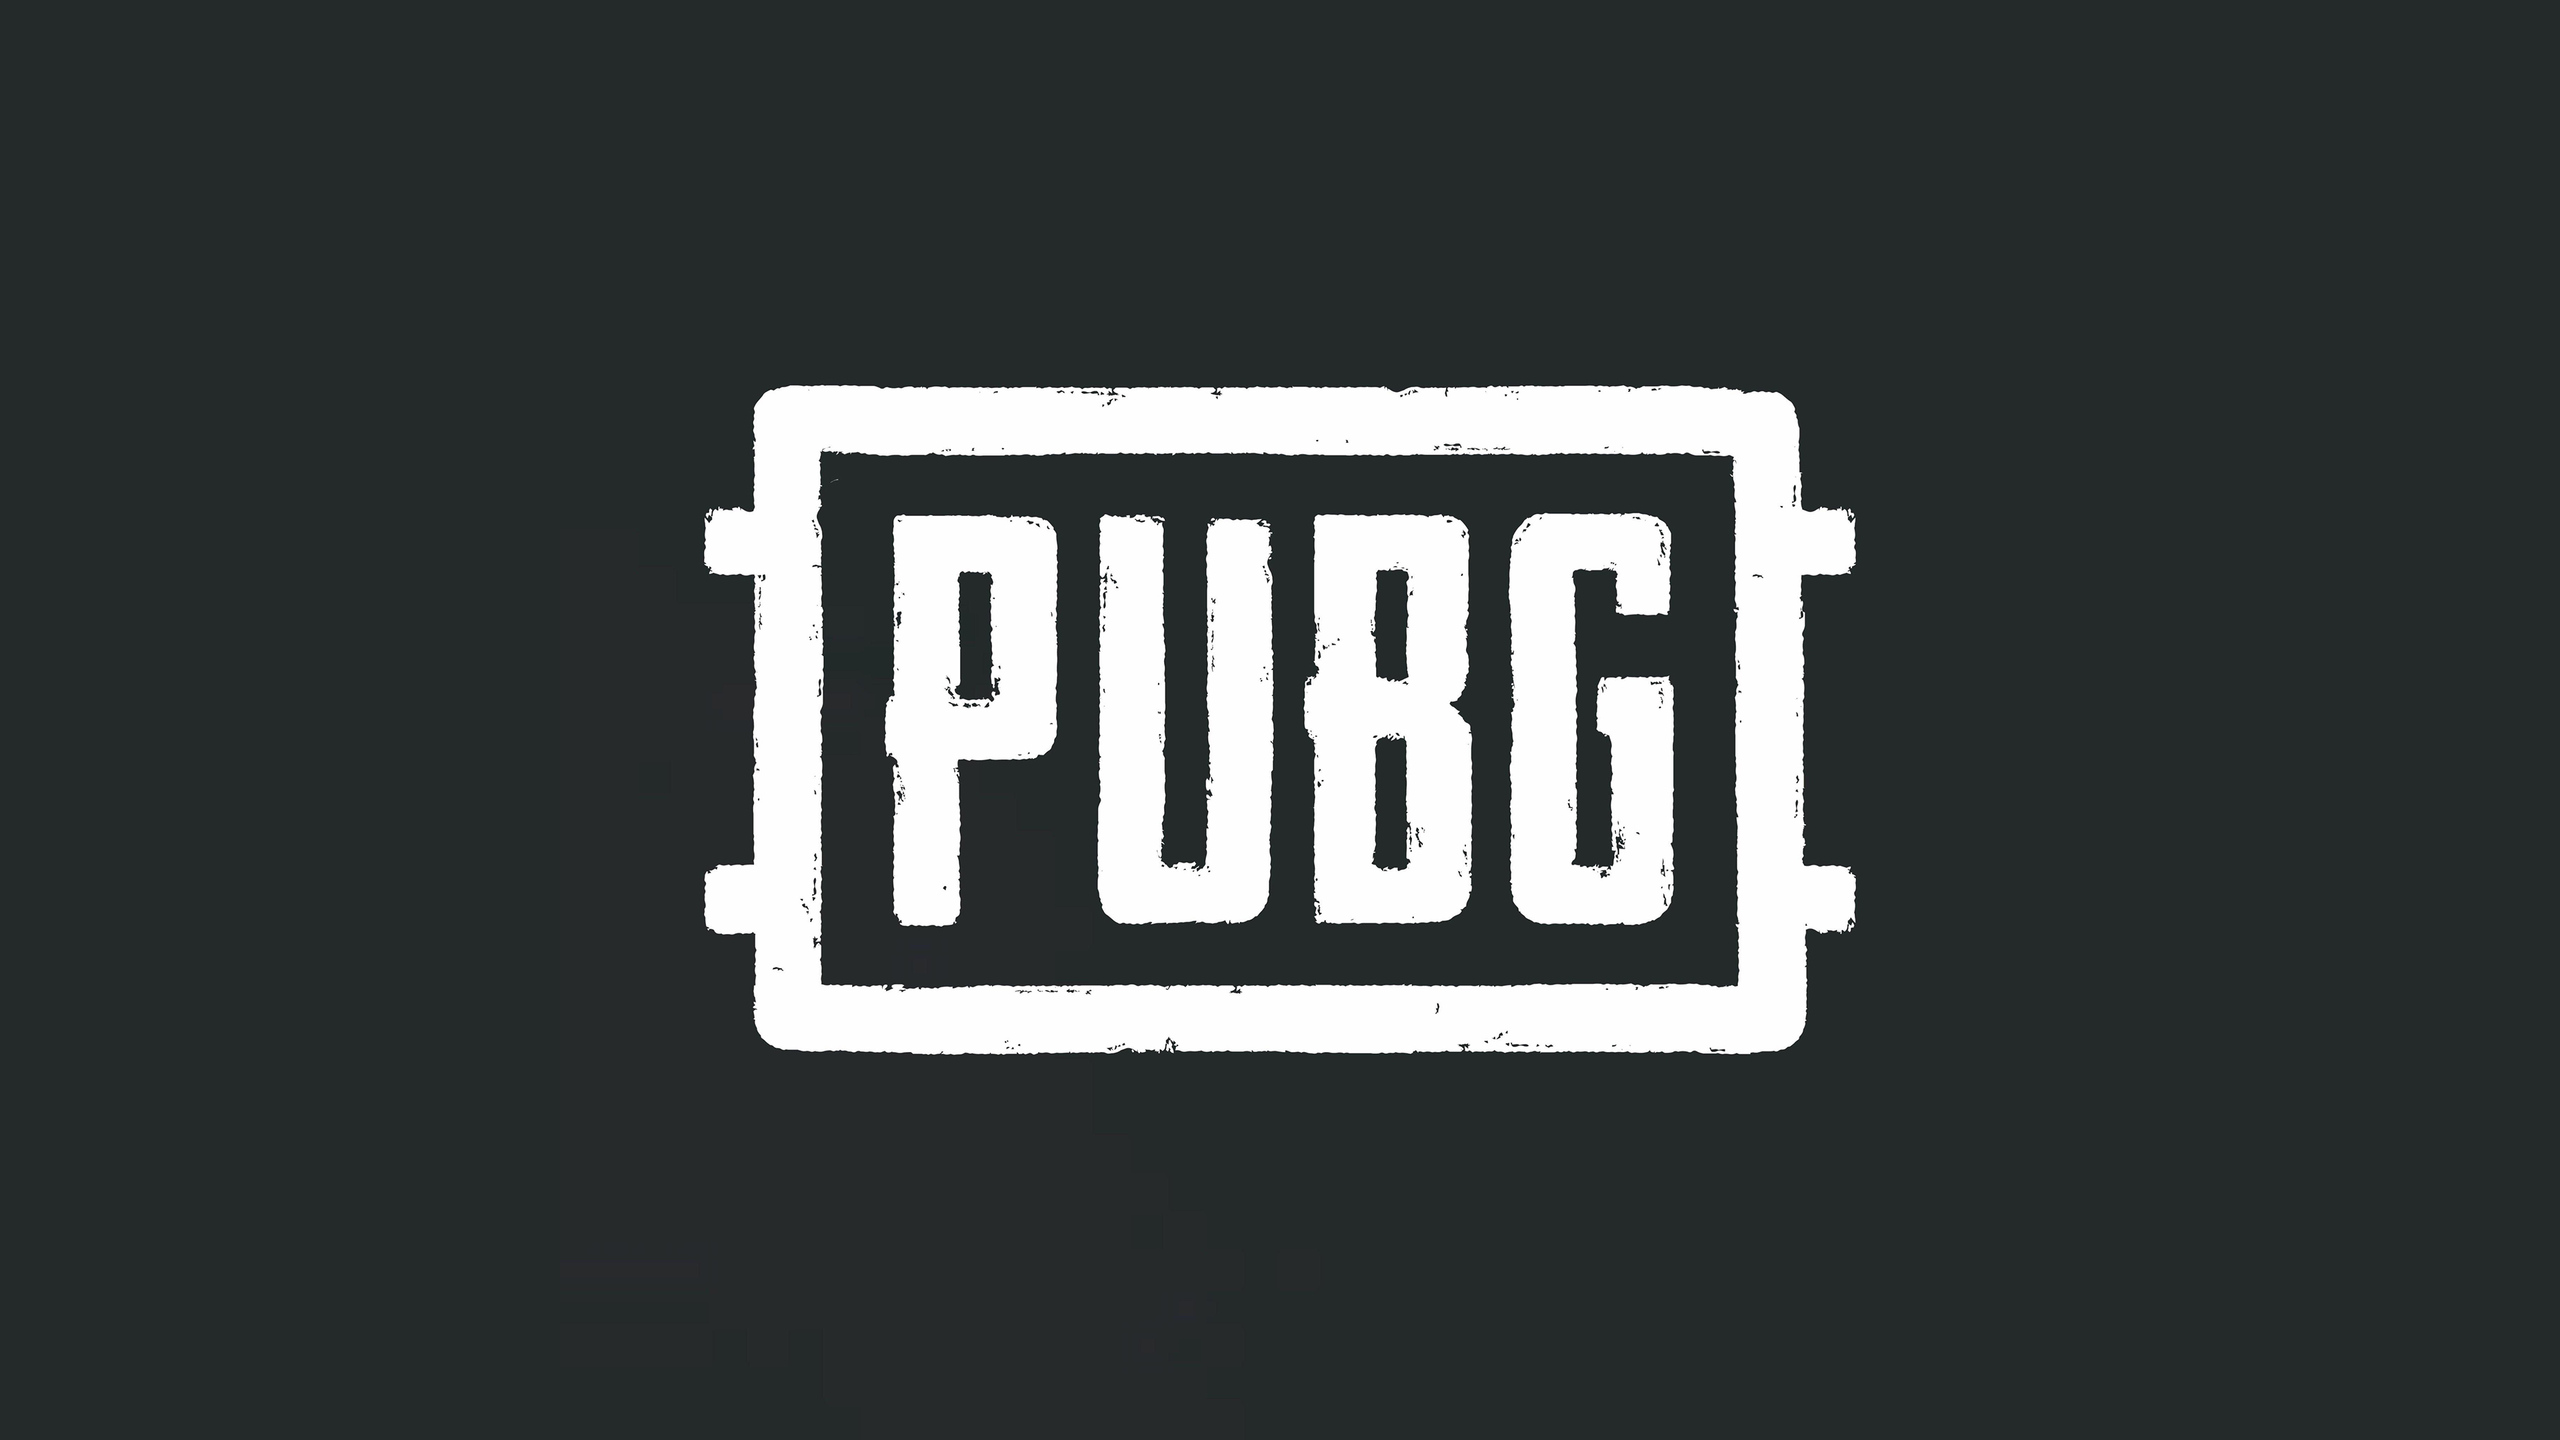 2560x1440 Pubg Game Logo 4k 1440p Resolution Hd 4k Wallpapers Images Backgrounds Photos And Pictures